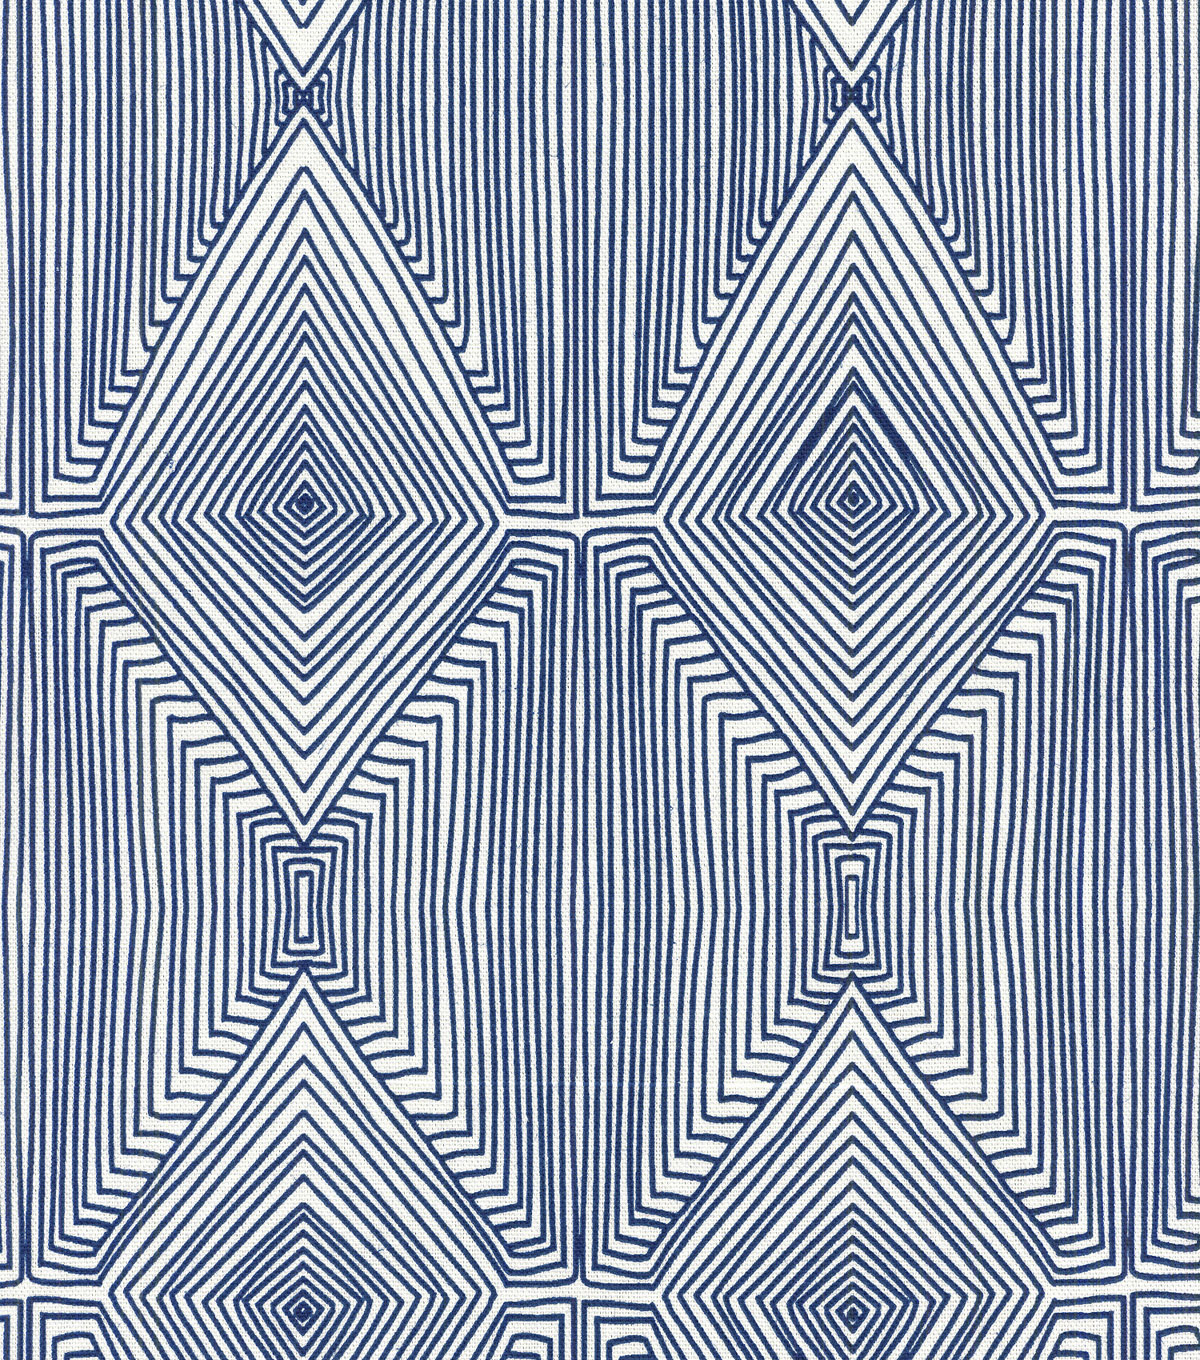 Nate berkus multi purpose decor fabric 54u0022 linea paramount caspian